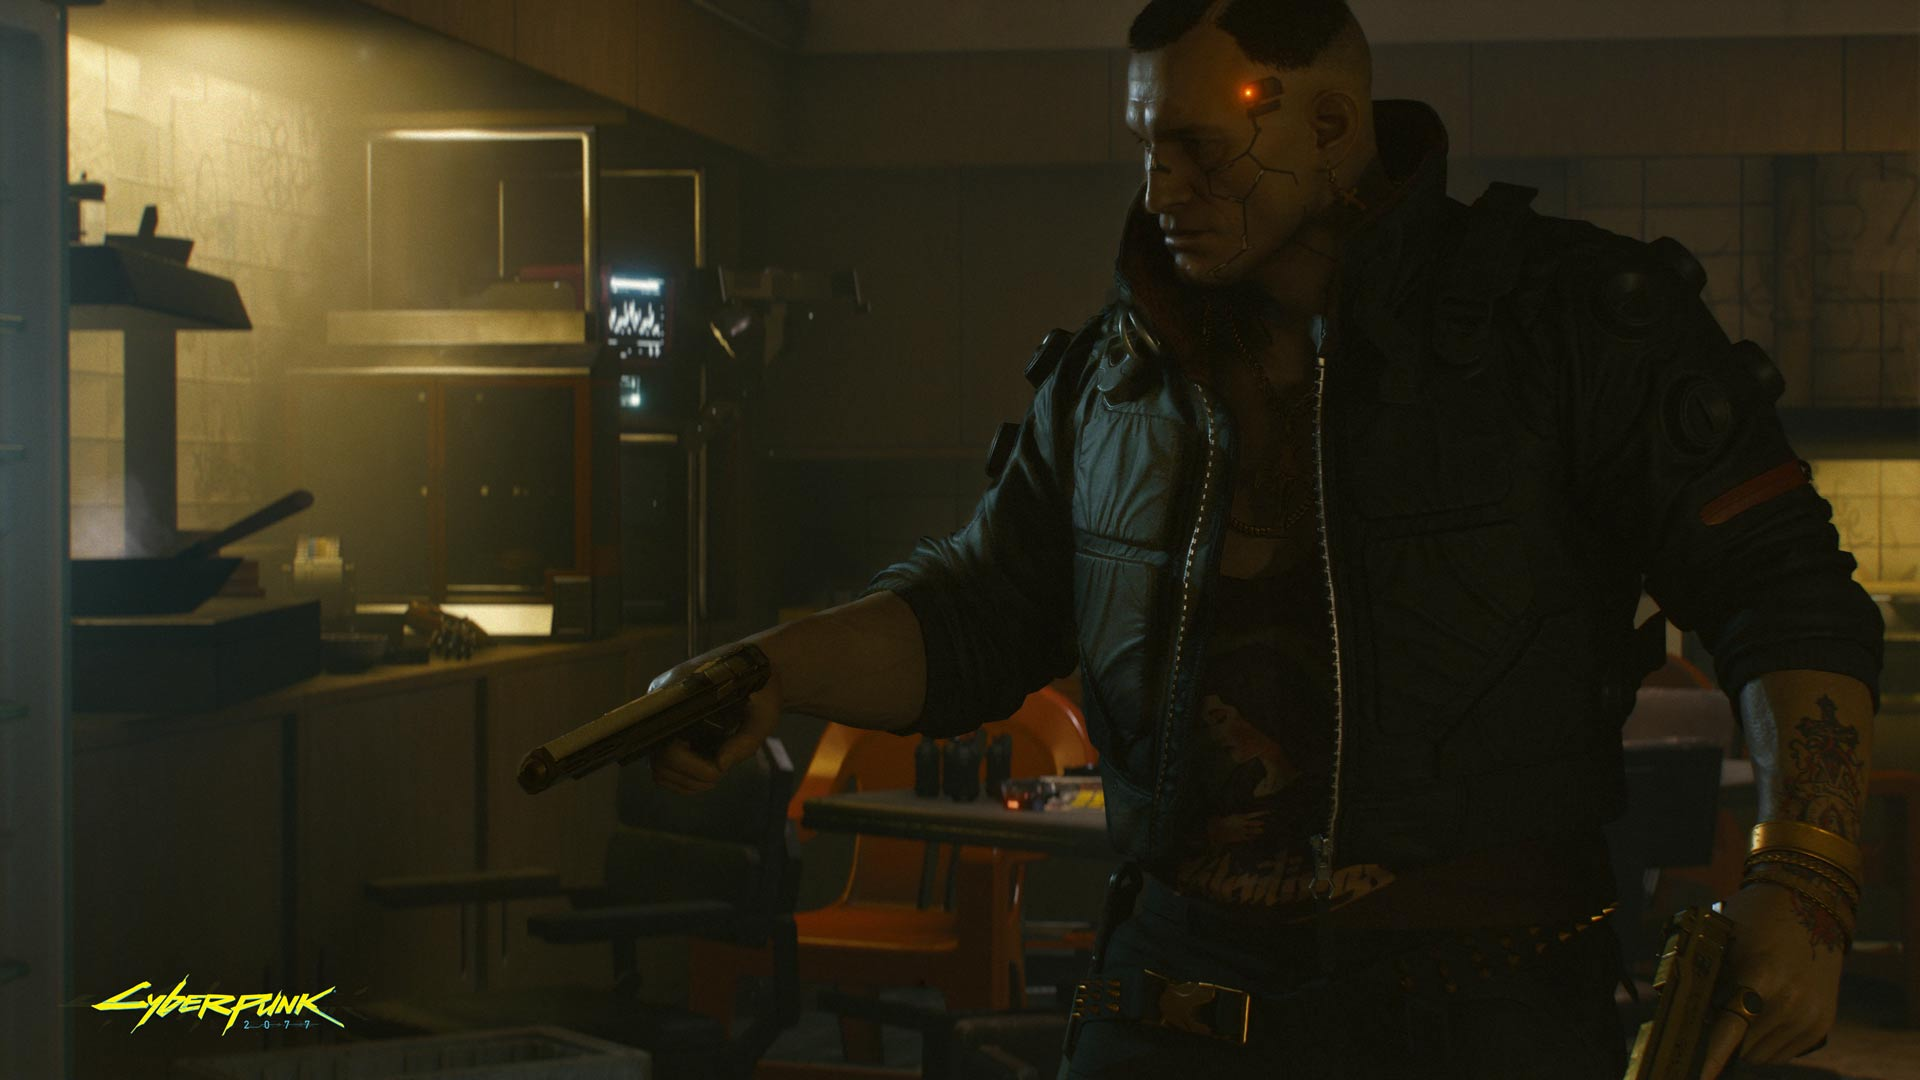 Cyberpunk 2077 Ready to get back to big leagues